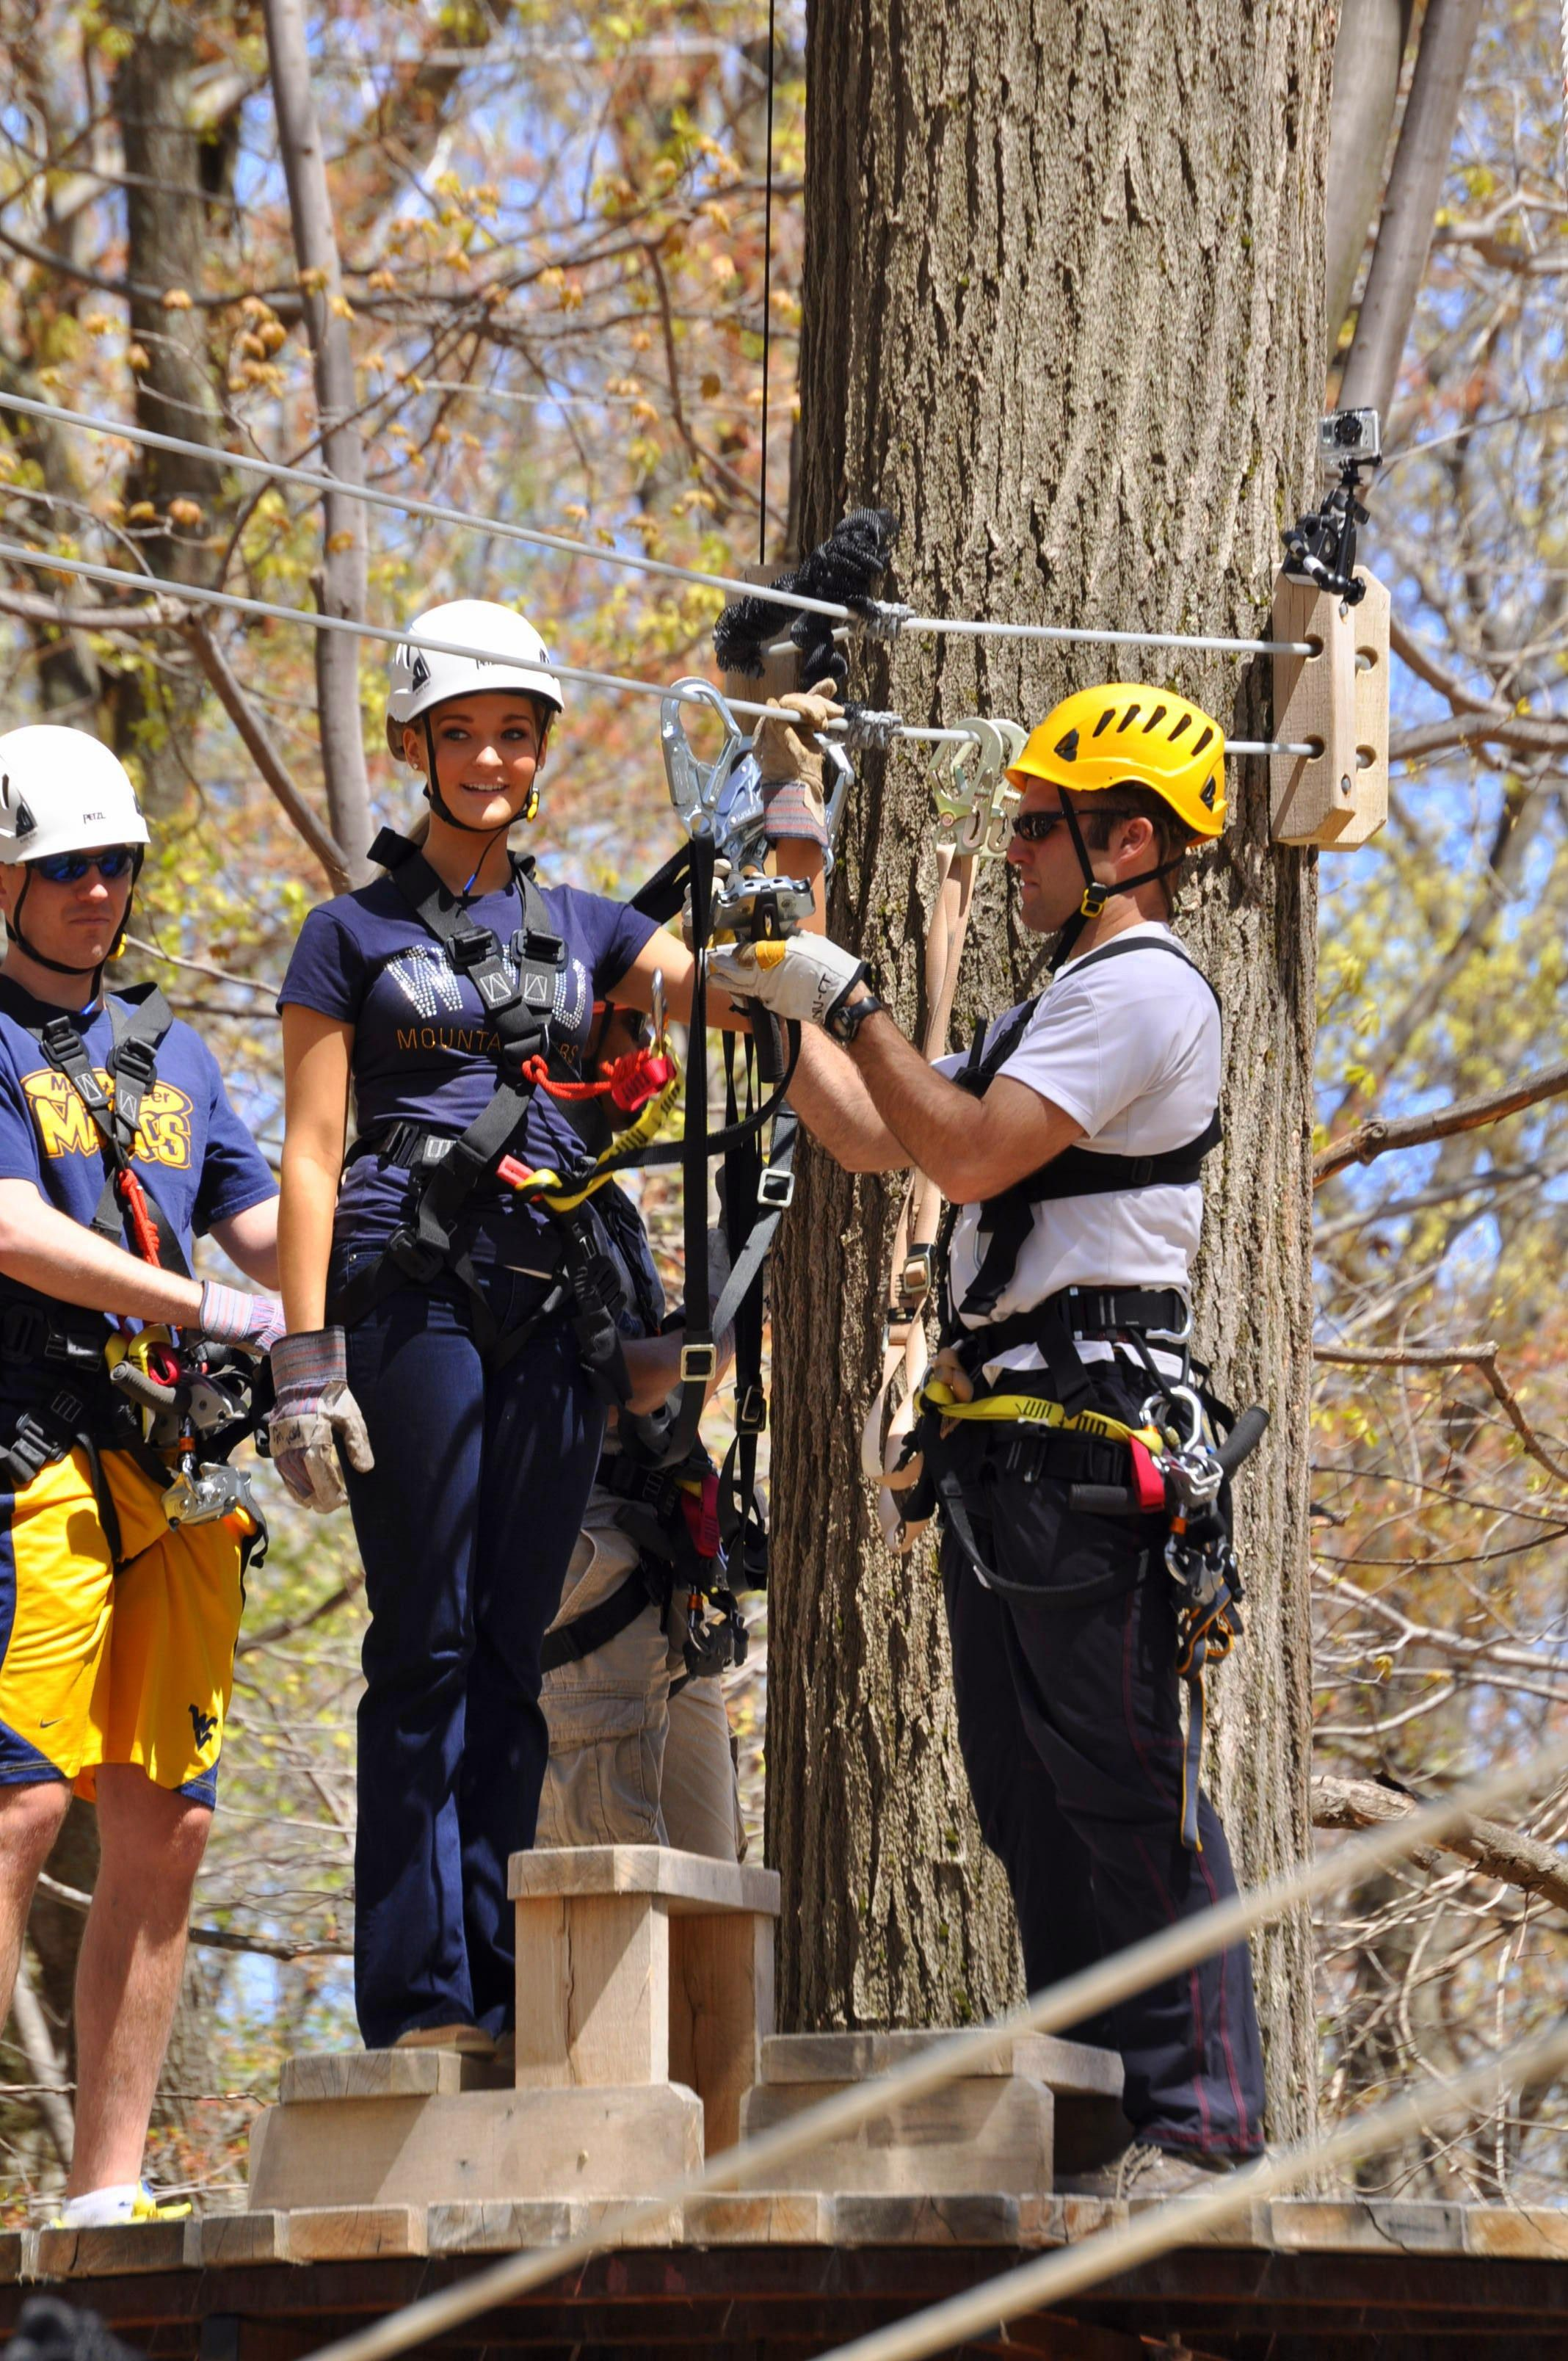 offers 120 miles of trails, zip lines